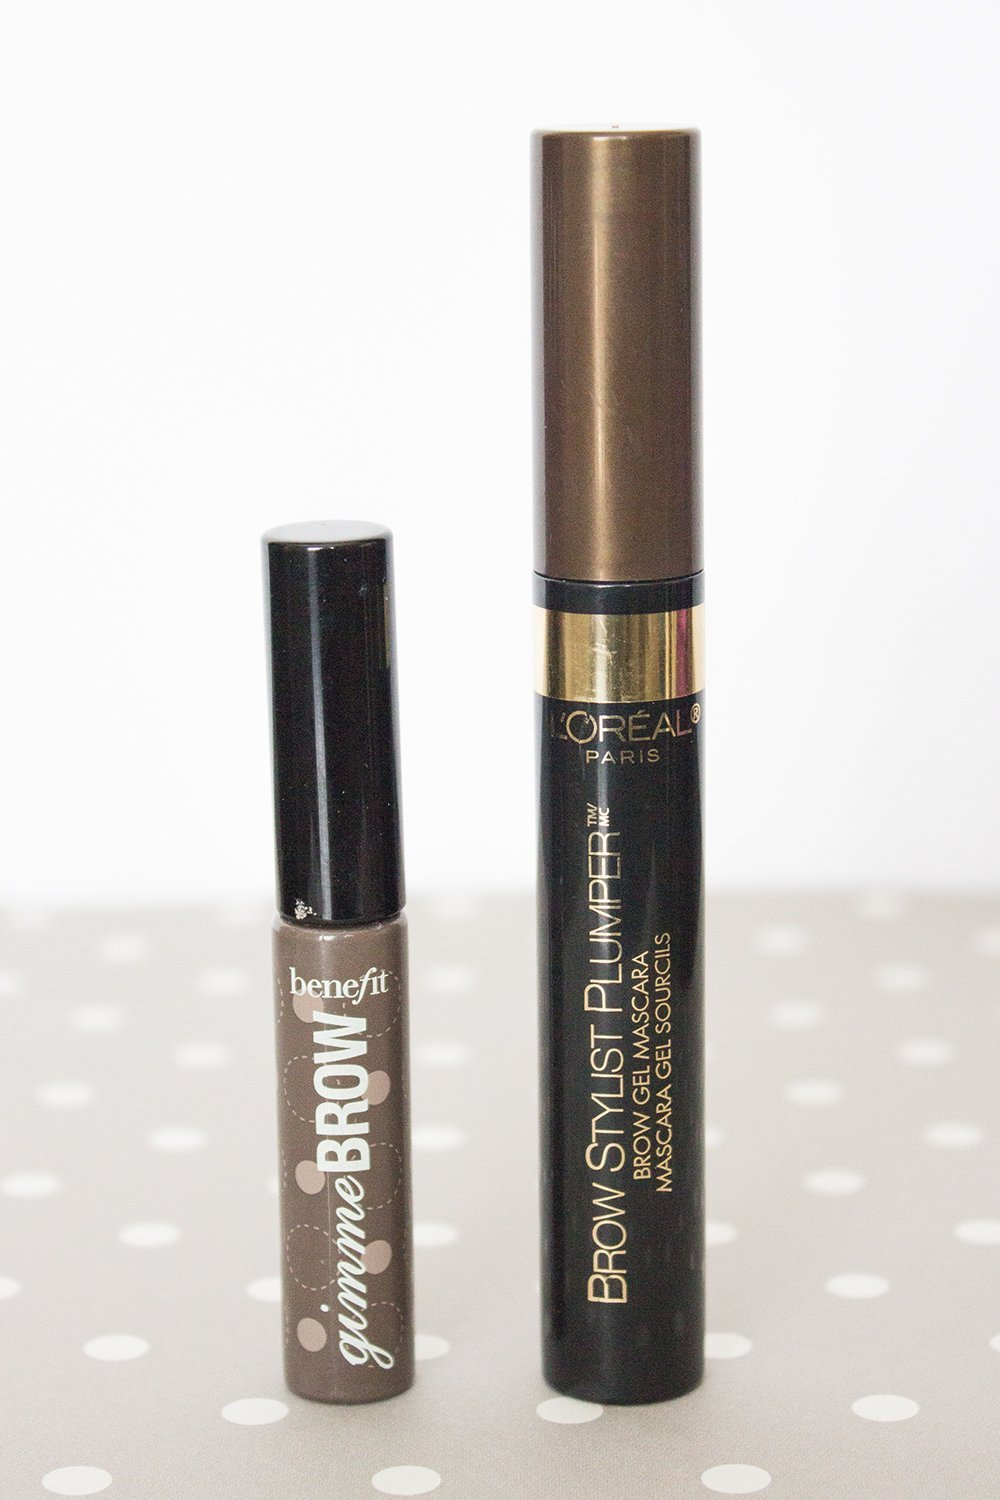 Makeup Dupes: Benefit Gimme Brow vs. L'Oreal Brow Stylist Plumper